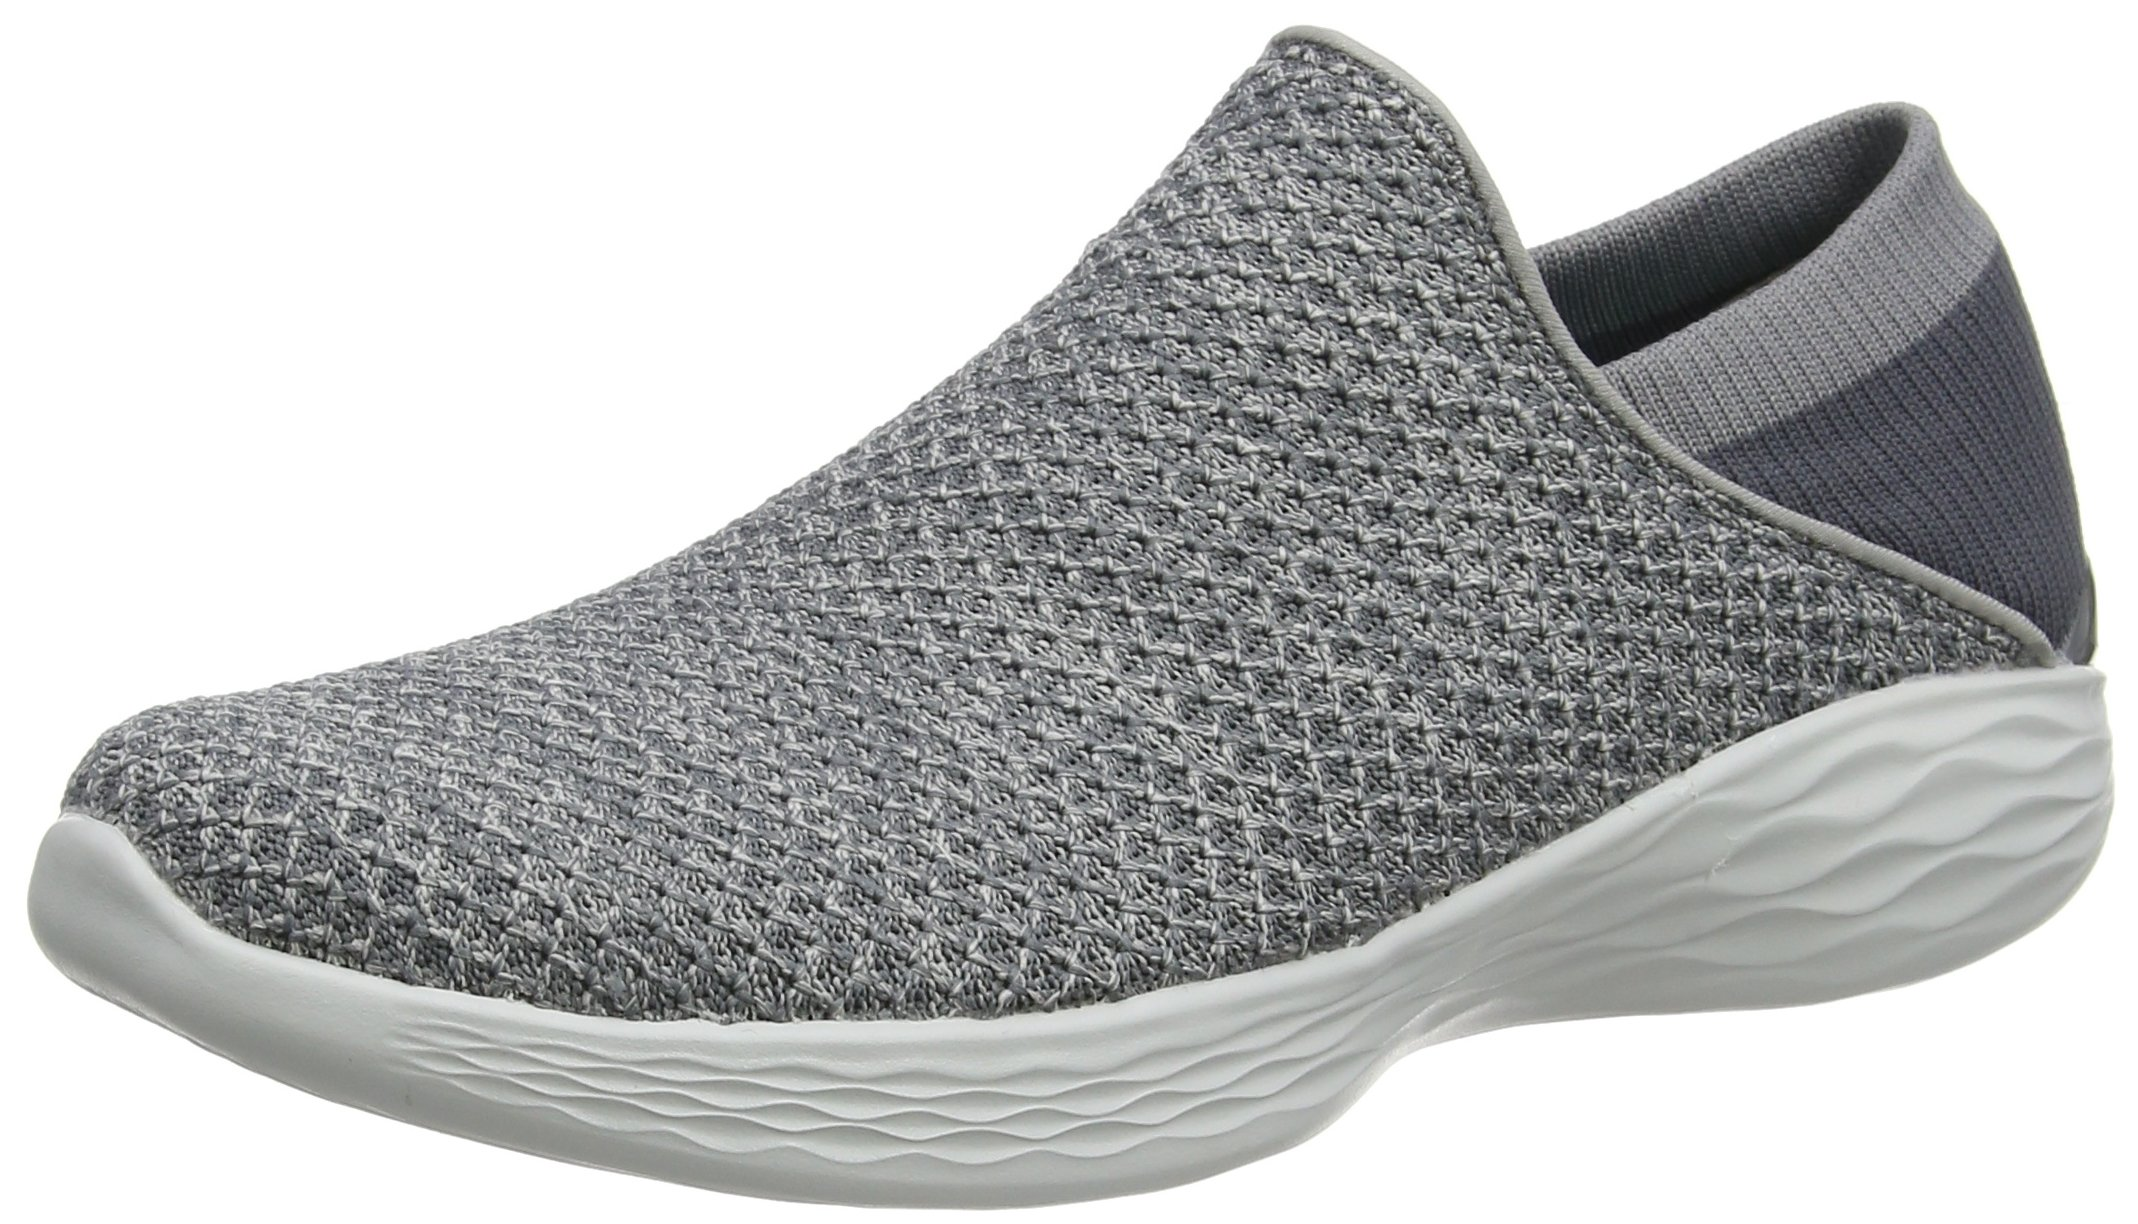 Skechers You Women's You Slip-on Shoe,Charcoal,9 M US